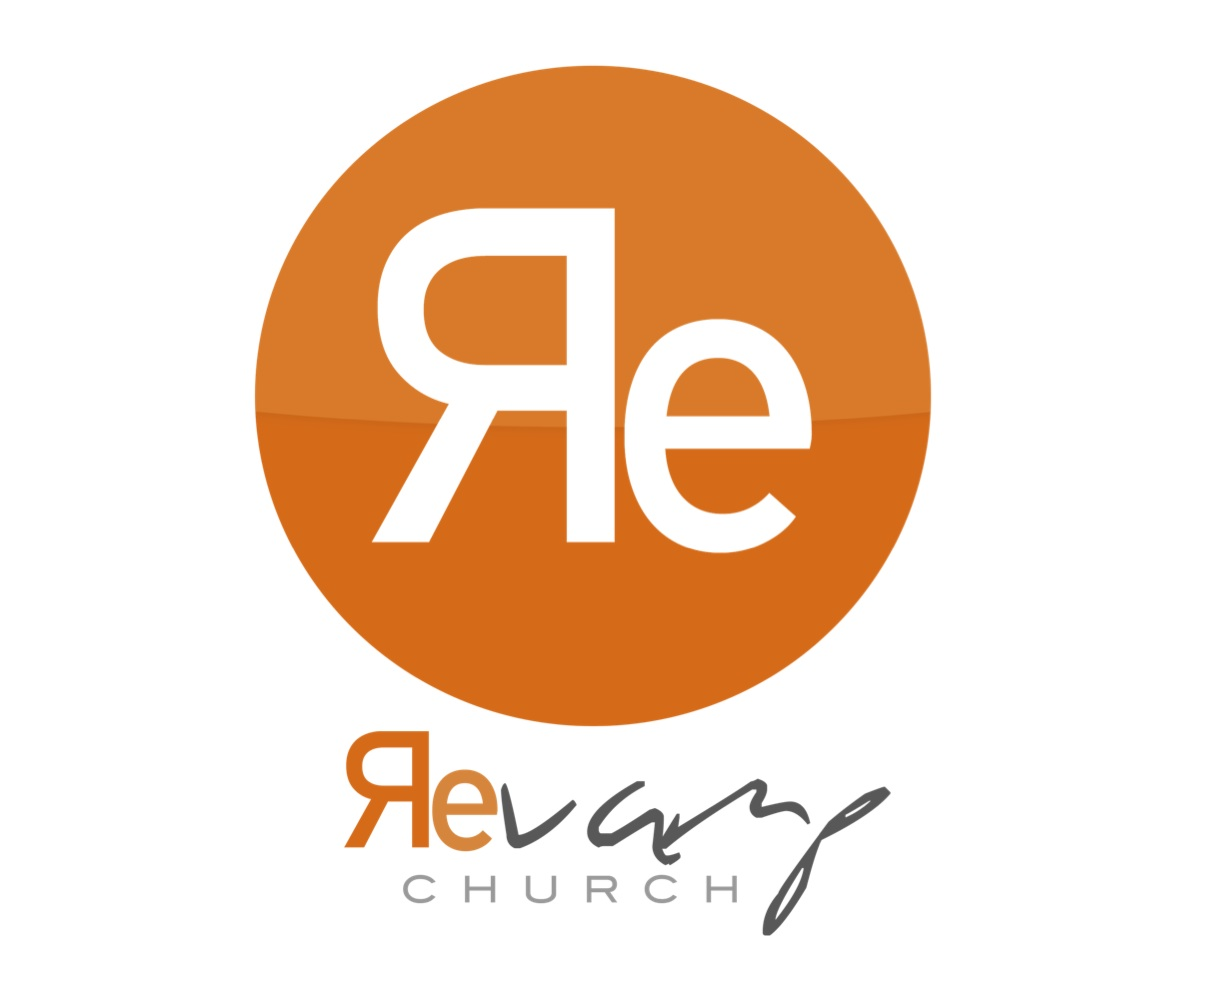 Revamp Church